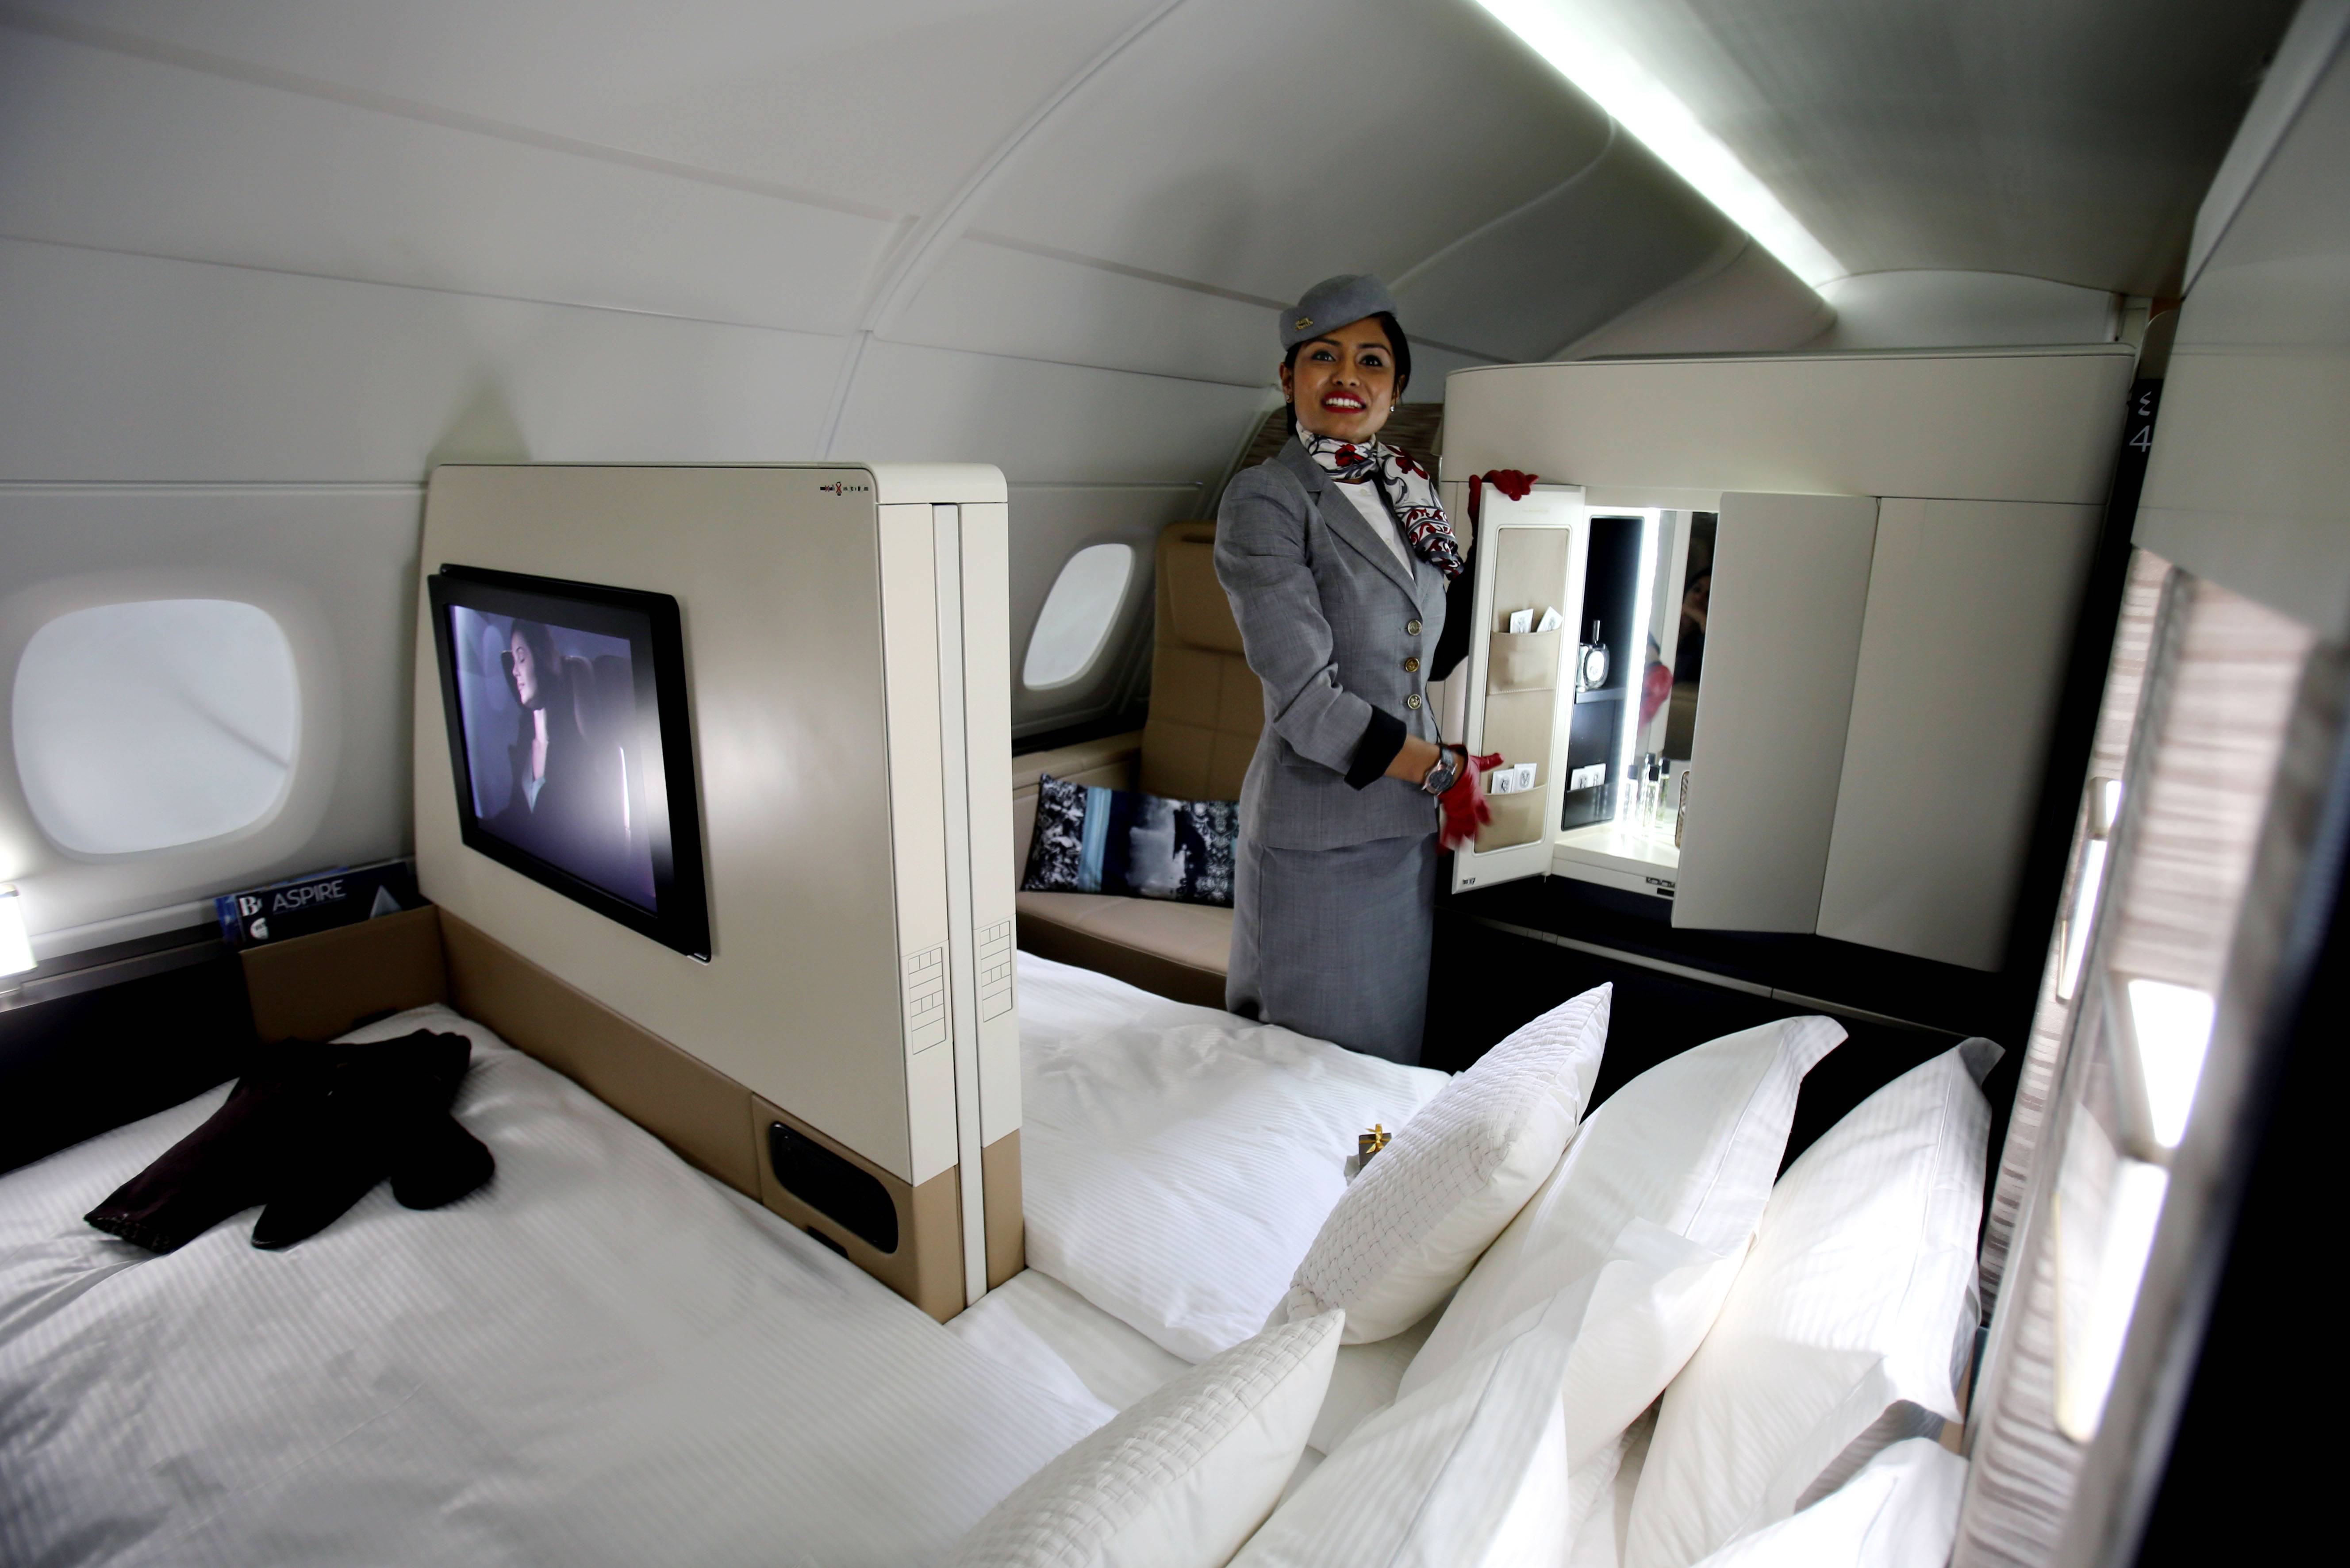 An Etihad Airways official stands inside a mock-up first class cabin, at a training facility in Abu Dhabi, United Arab Emirates, Sunday. Etihad Airways, a fast-growing Mideast carrier, plans to offer passengers a miniature suite featuring a closed-off bedroom, private bathroom and a dedicated butler.